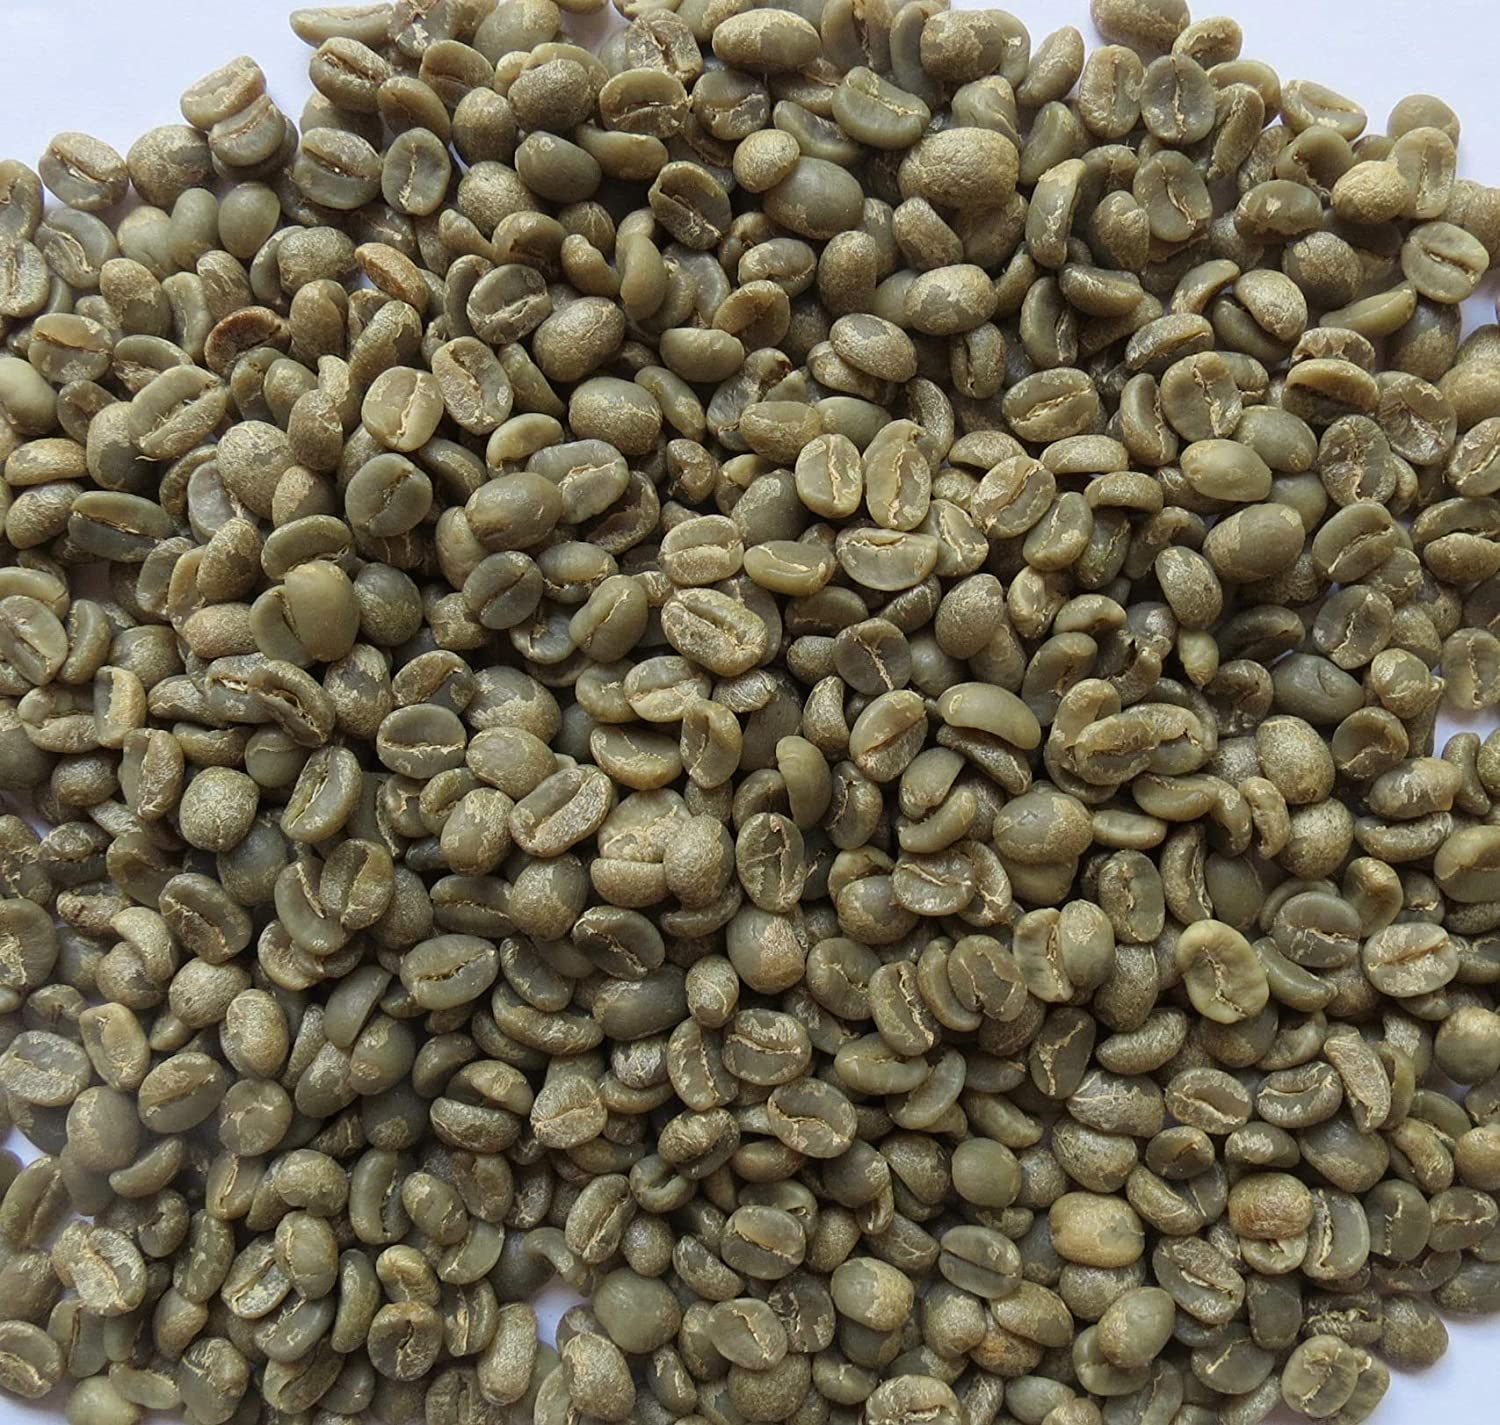 Amazon Com 3 Lb Single Origin Unroasted Green Coffee Beans Specialty Grade From Single Nicaraguan Estate Direct